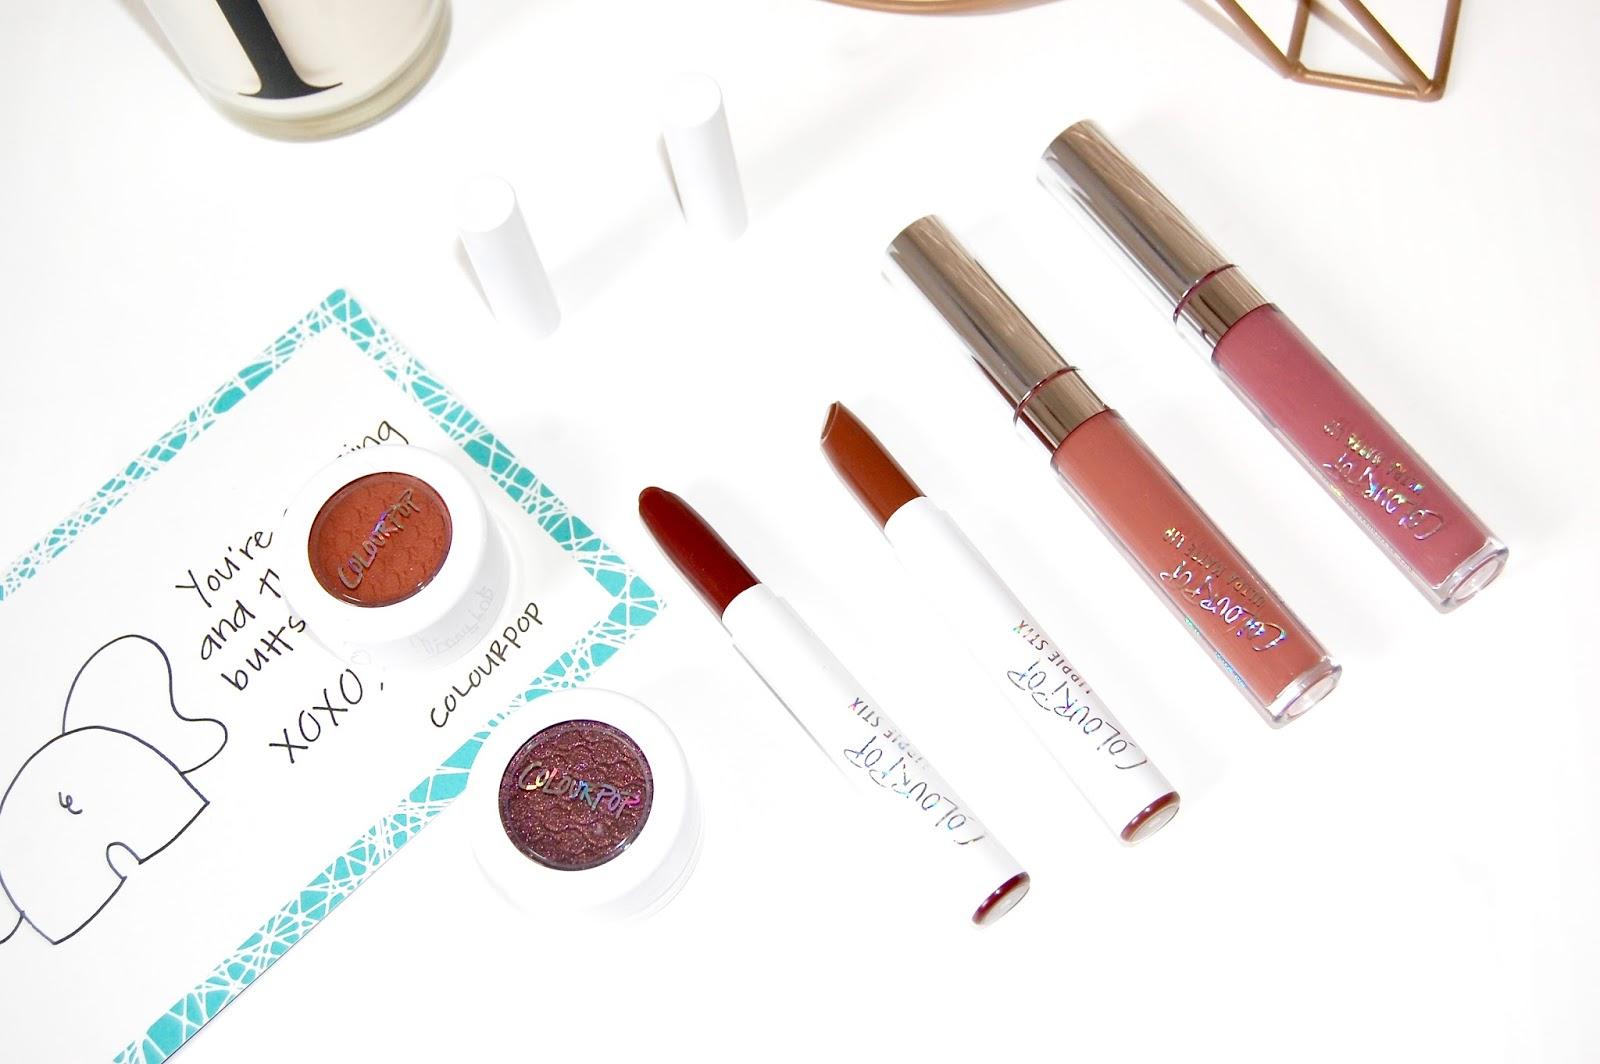 See my Colourpop haul here with swatches